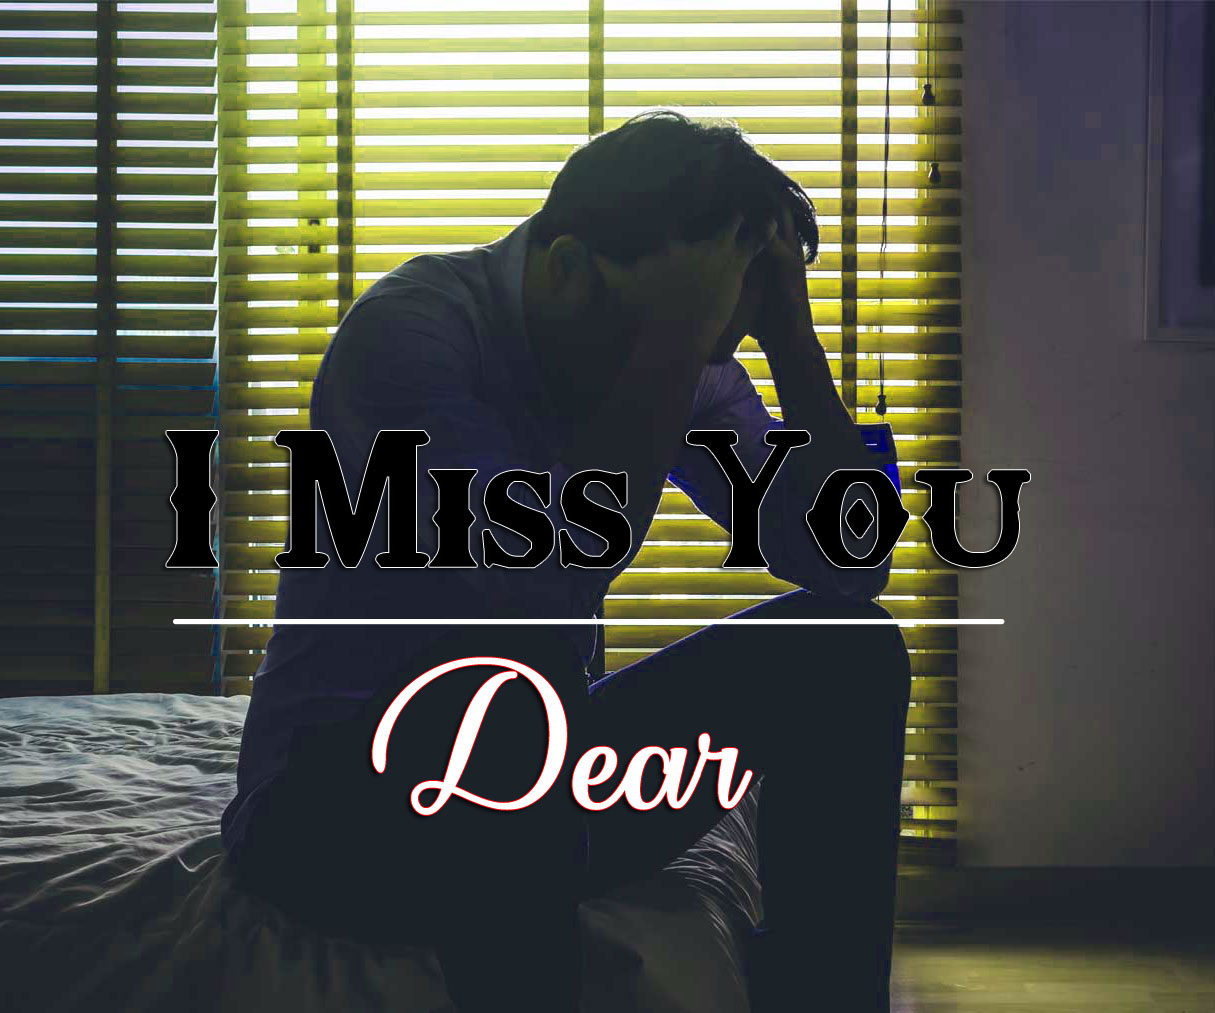 I miss you Images With Sad Boys